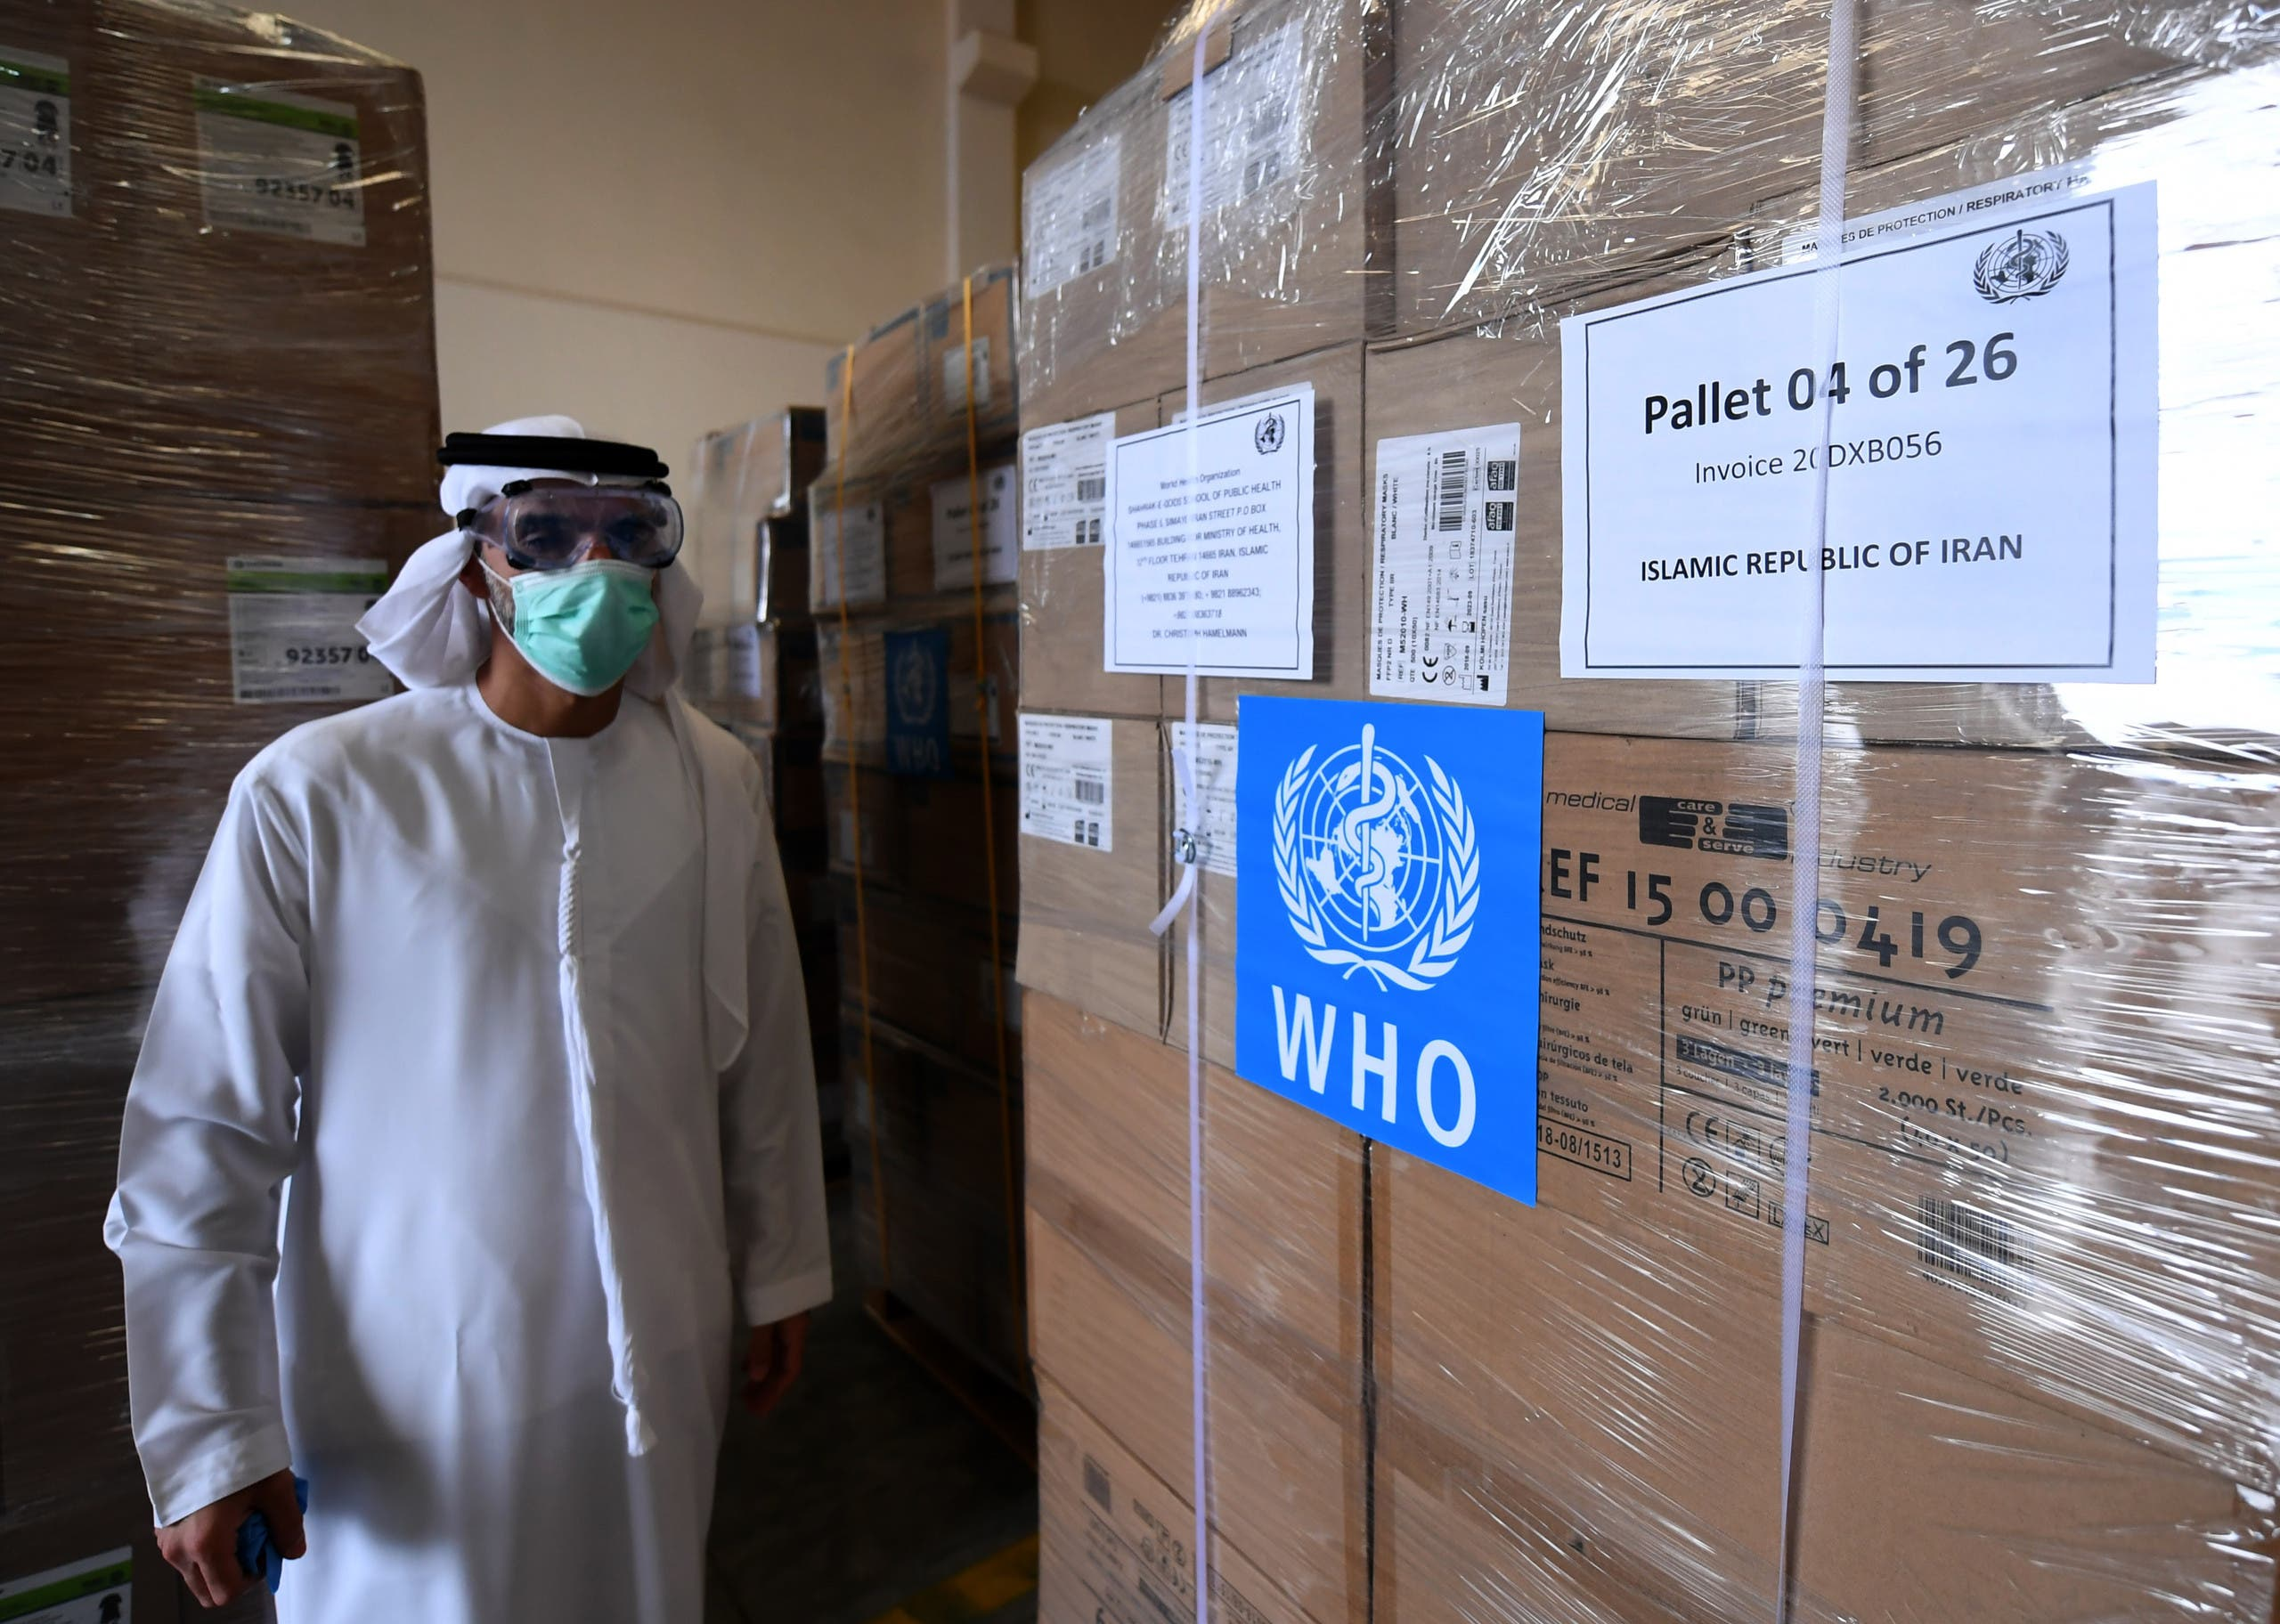 Medical equipment and coronavirus testing kits provided by the World Health Organization are pictured at the al-Maktoum International airport in Dubai on March 2, 2020 as it is prepared to be delivered to Iran with a United Arab Emirates military transport plane. (AFP)